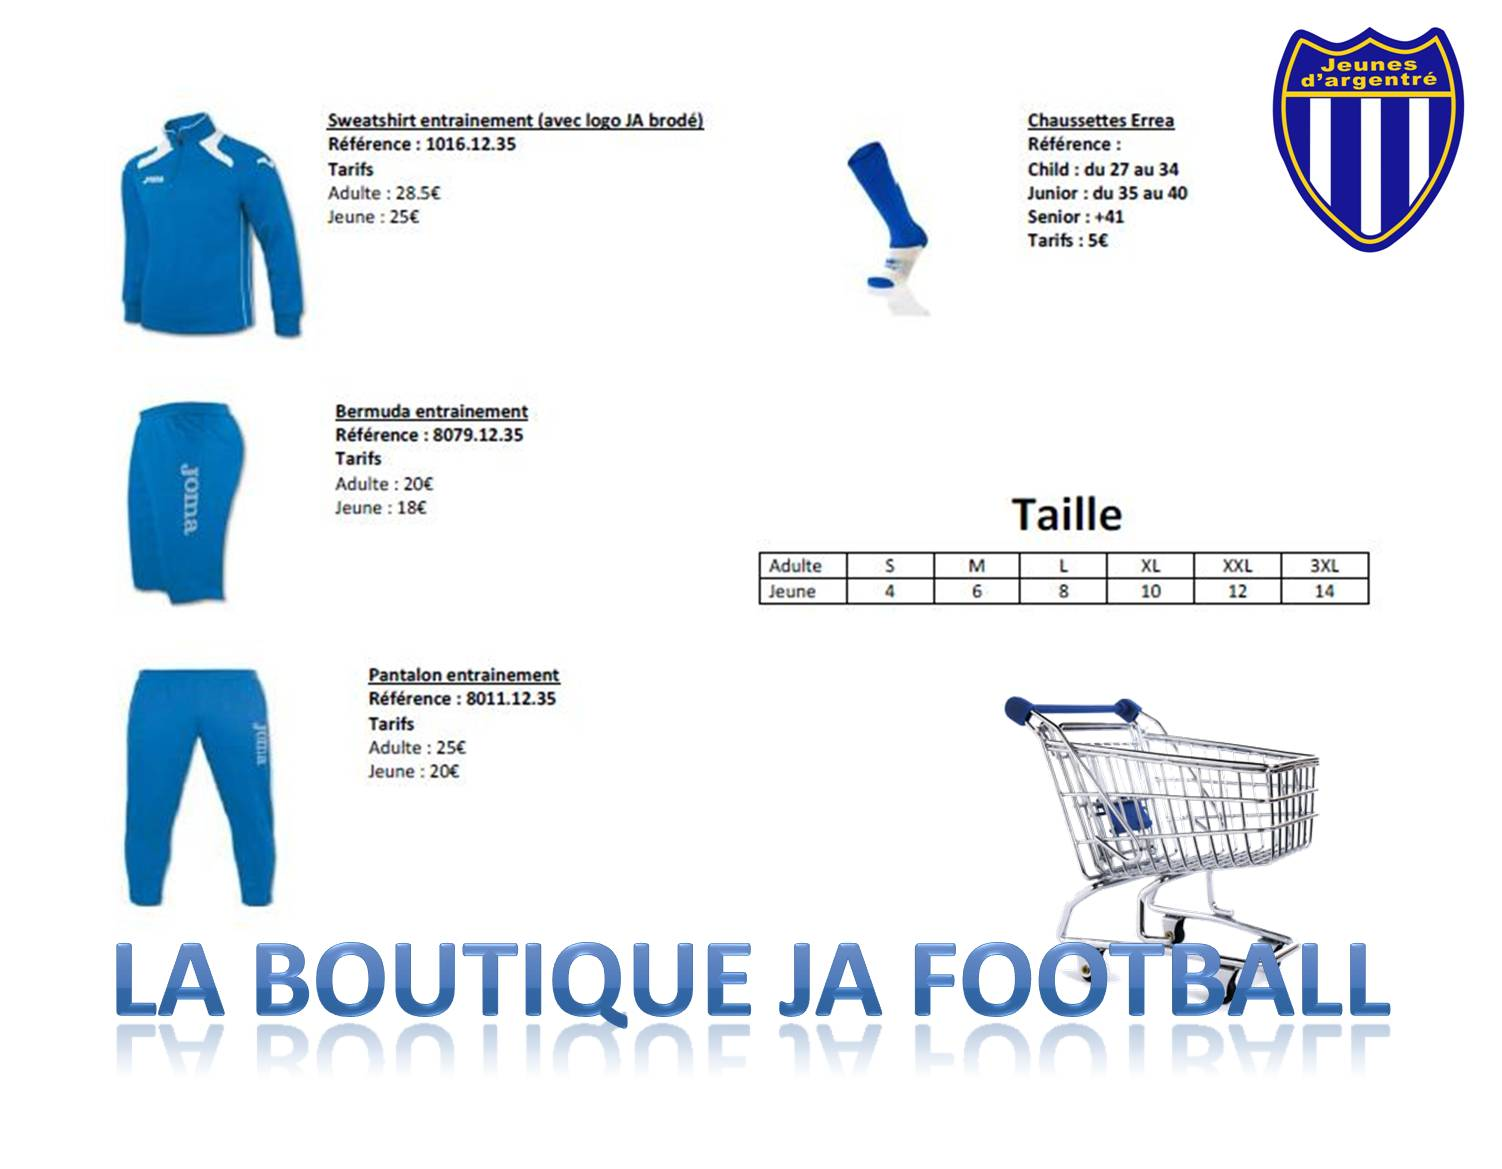 LA BOUTIQUE JA FOOT